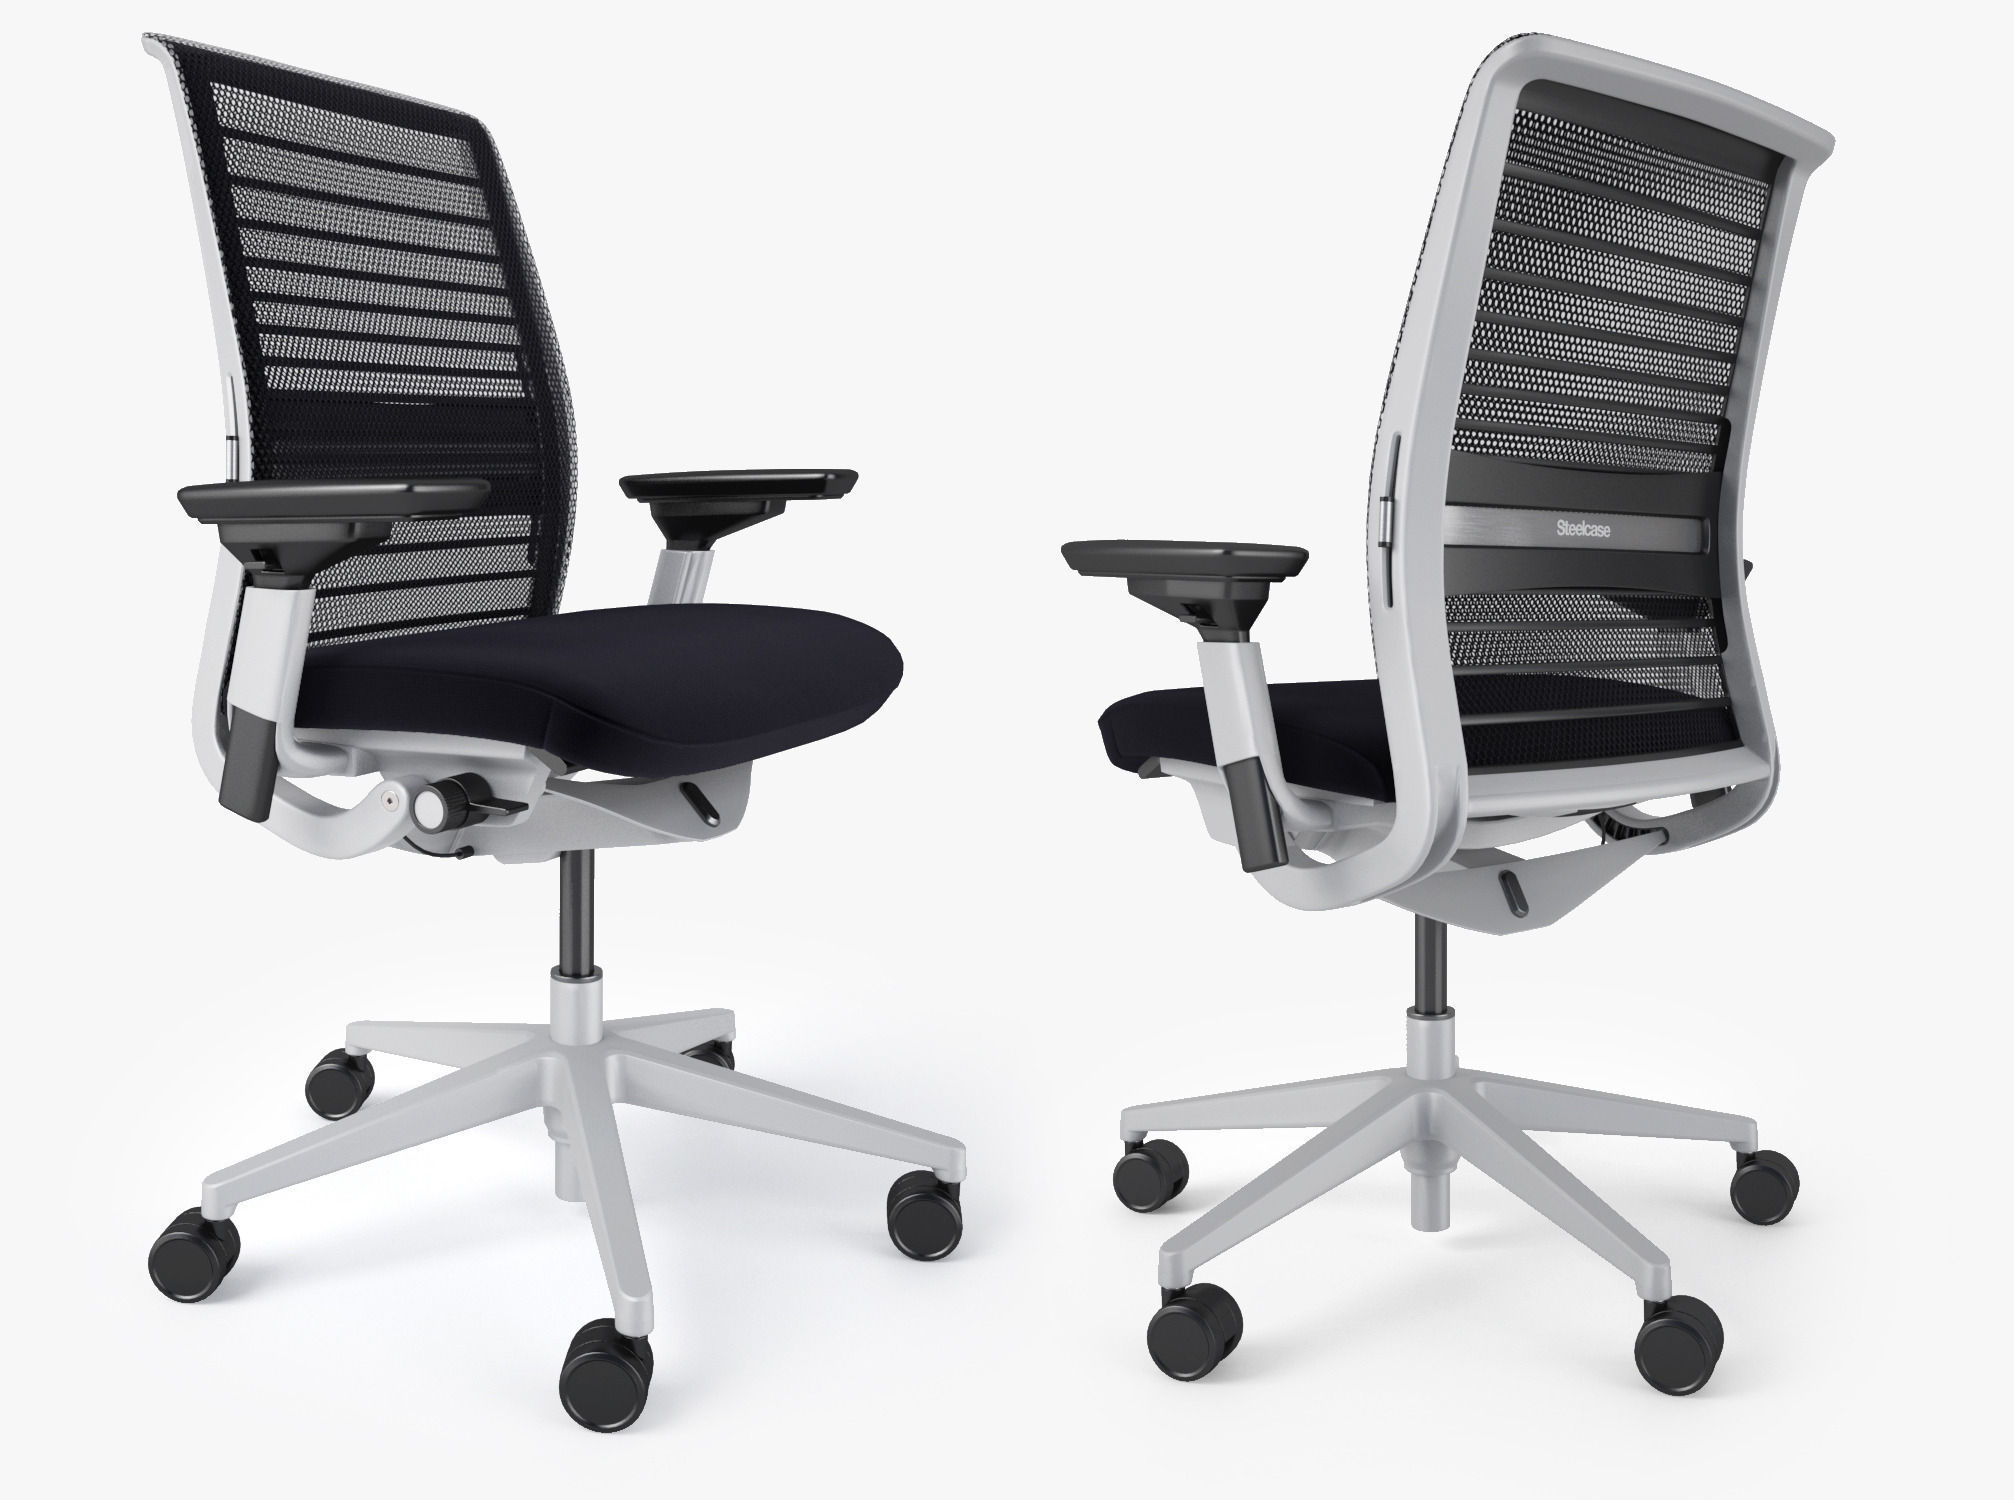 Steelcase Think Office Chair 3D Model MAX OBJ FBX MTL